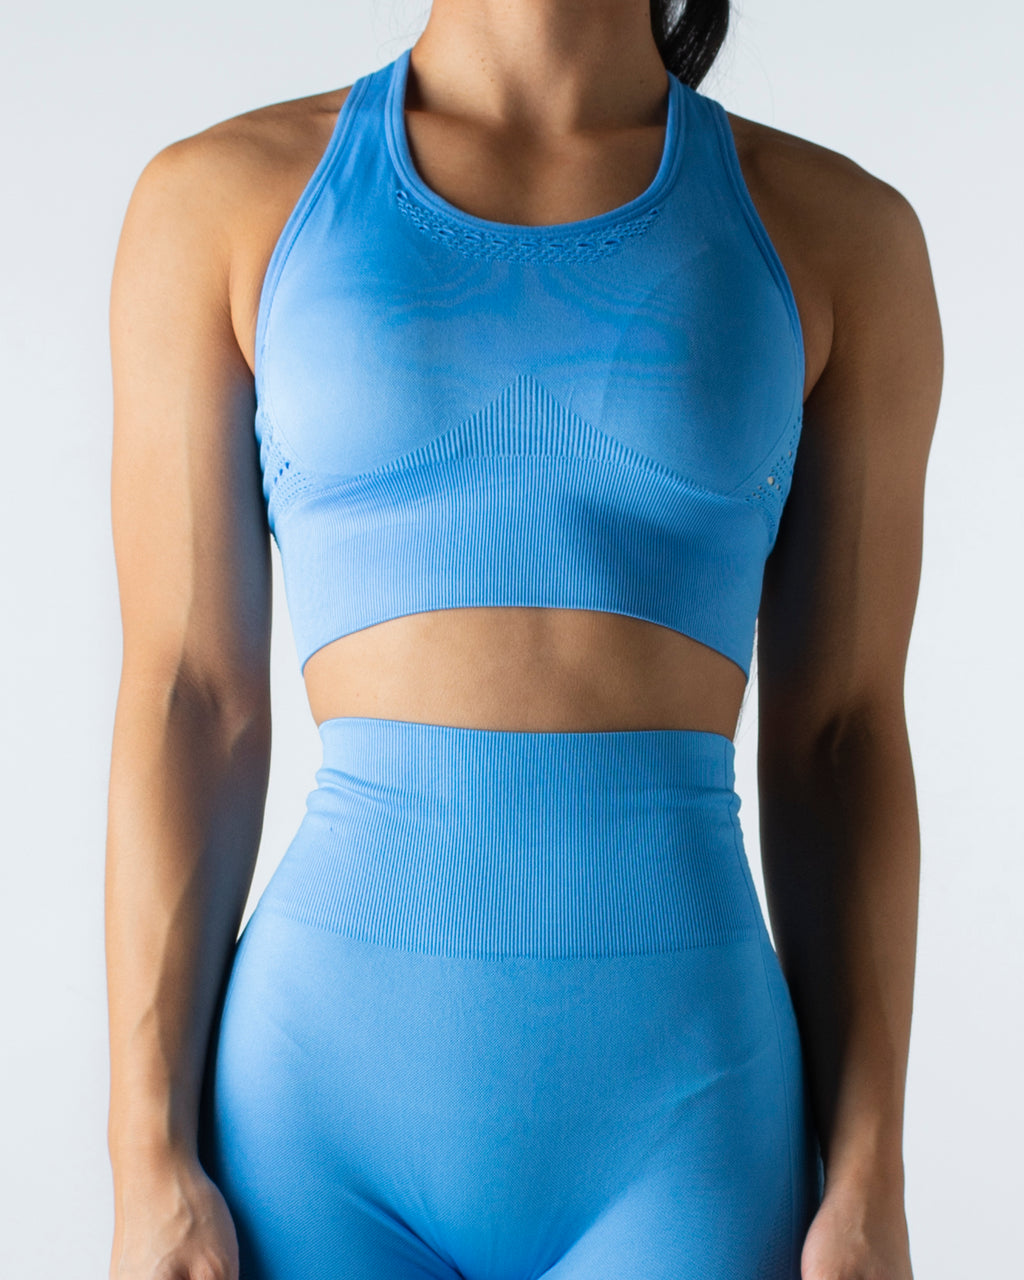 Seamless Blue Crop Top - MC Activewear and Waist Training